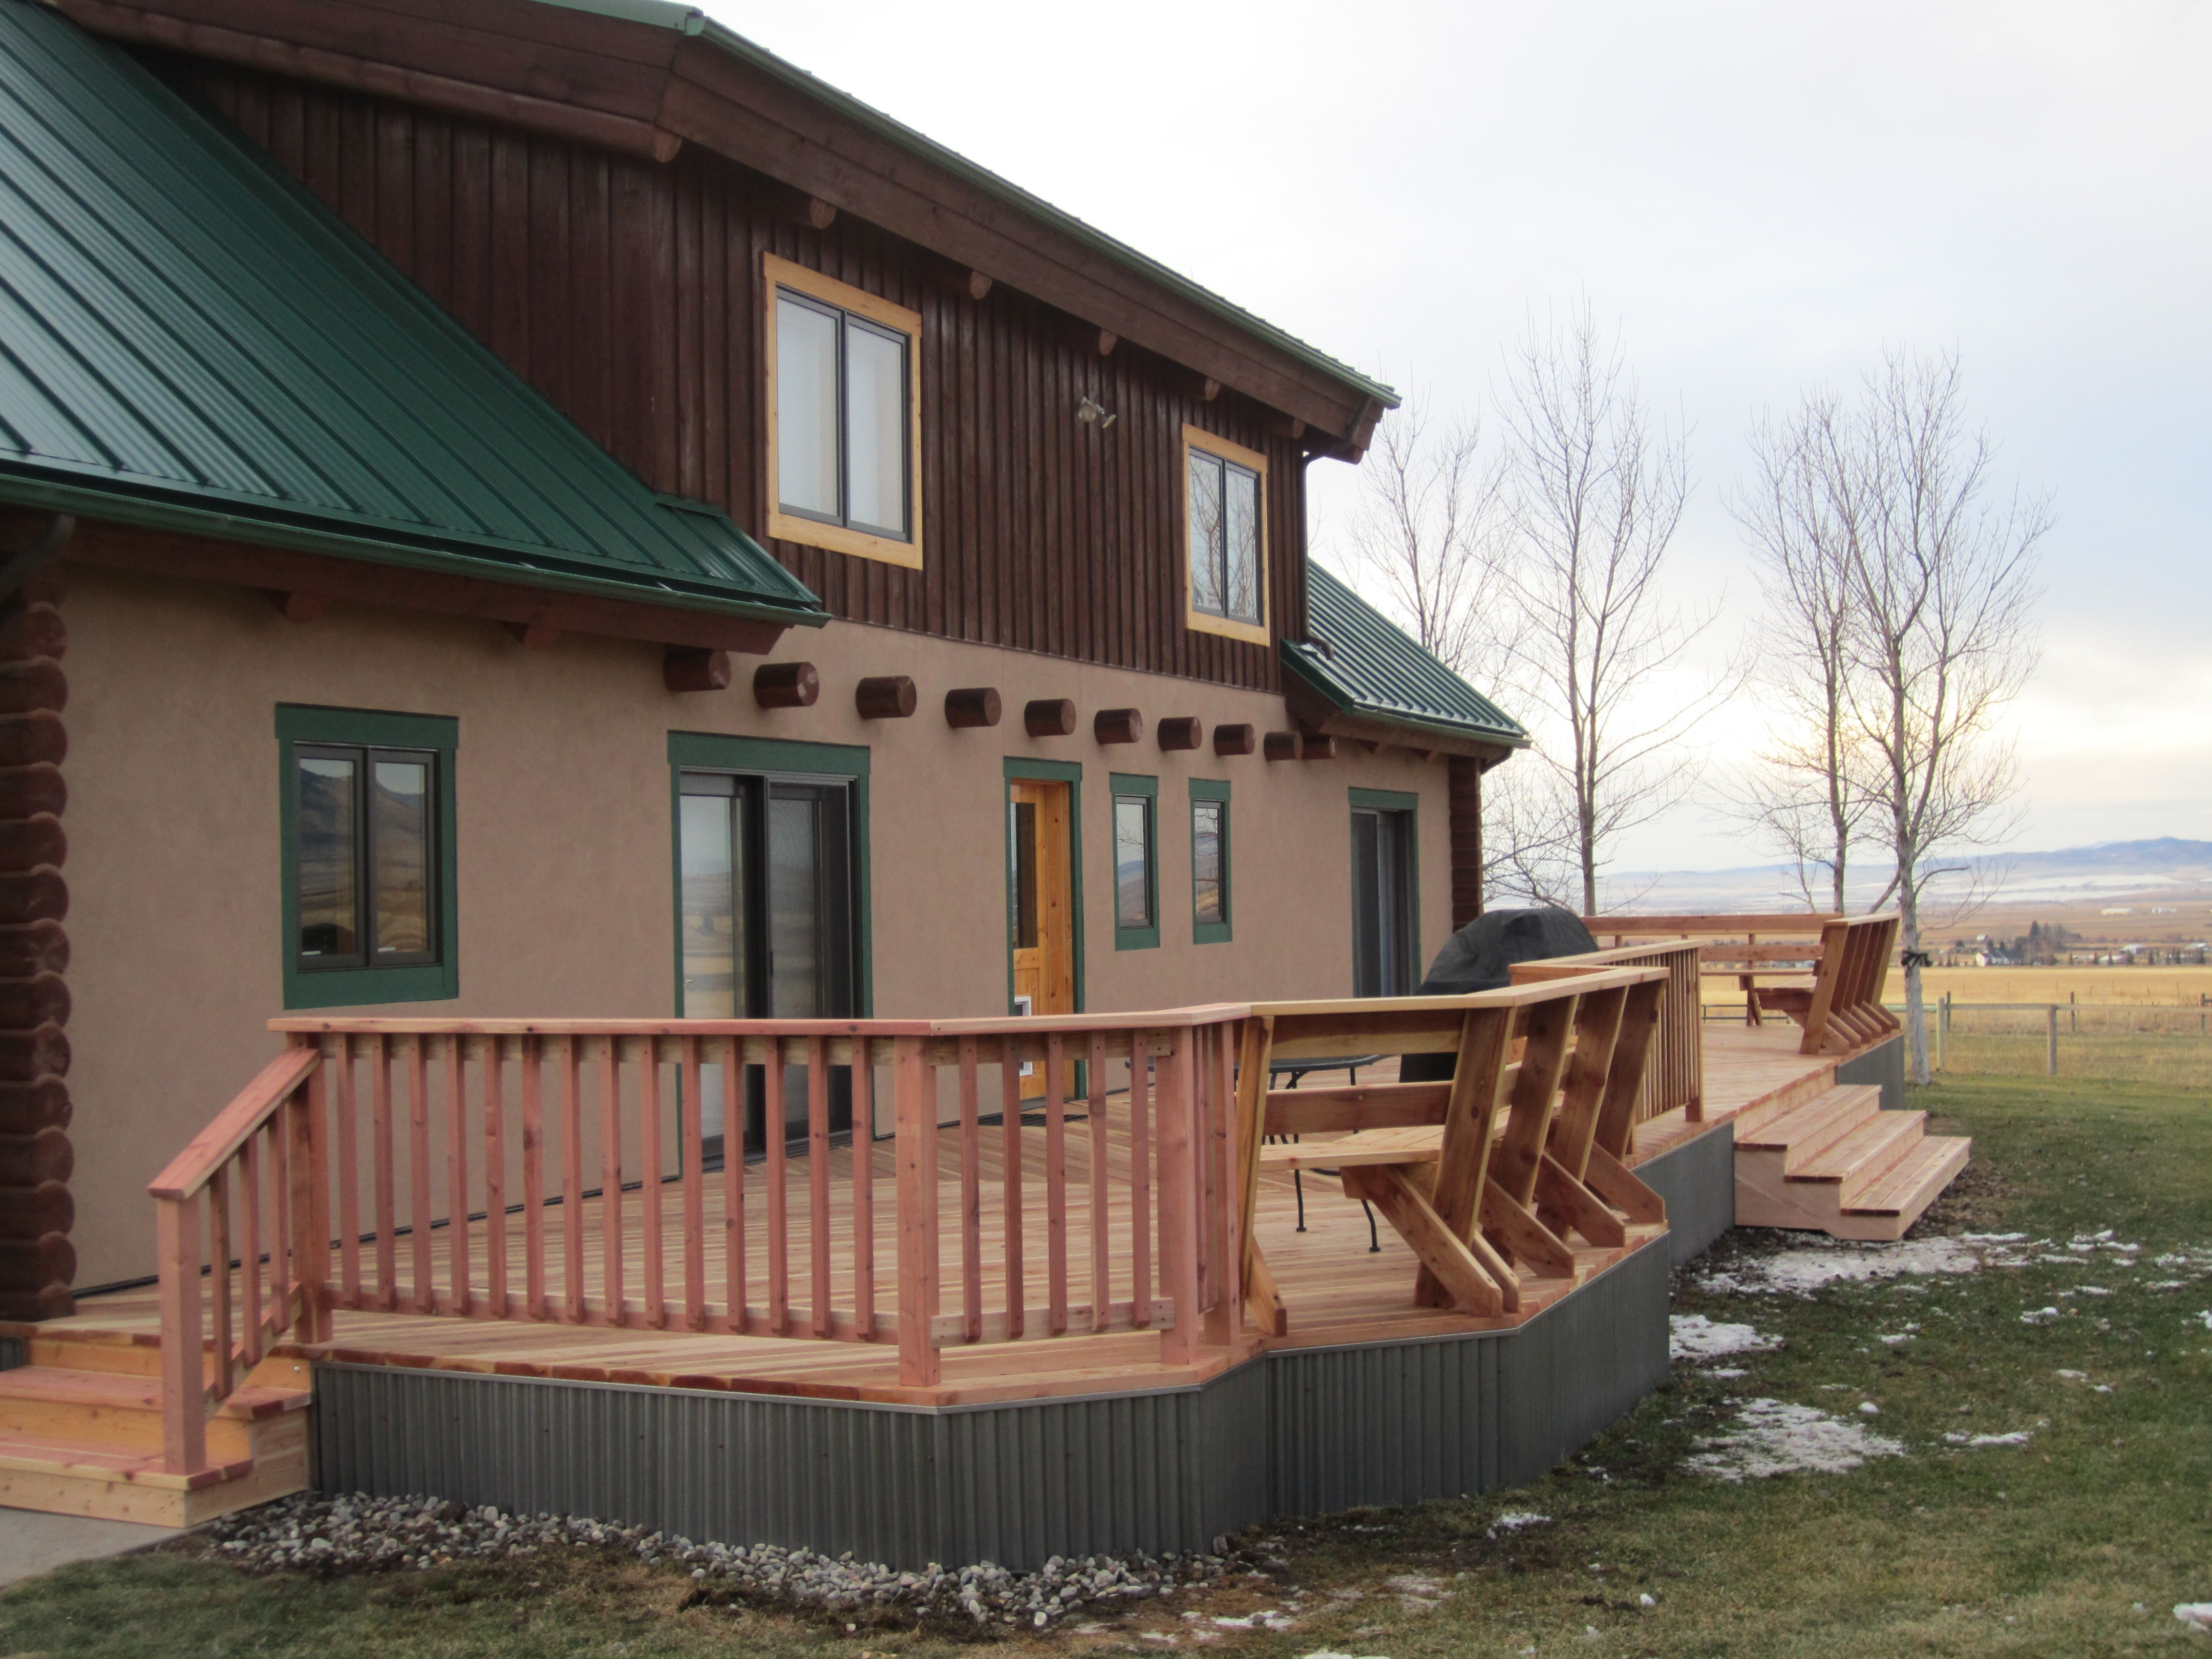 Redwood Deck With Corrugated Steel Skirt And Built In